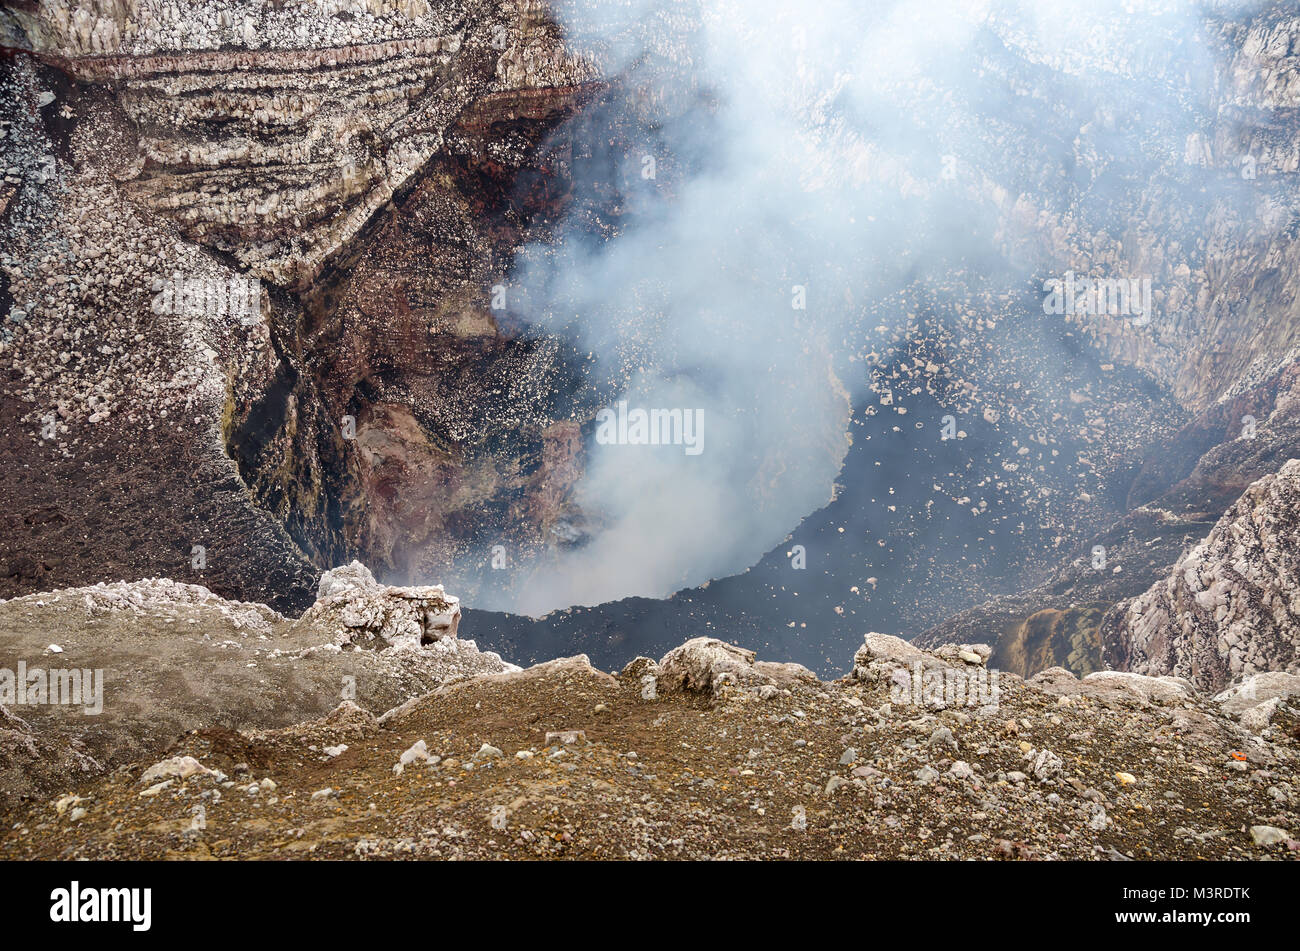 Volcanic activity in the Santiago crater of the volcano Masaya, which continually emits large amounts of sulfur - Stock Image